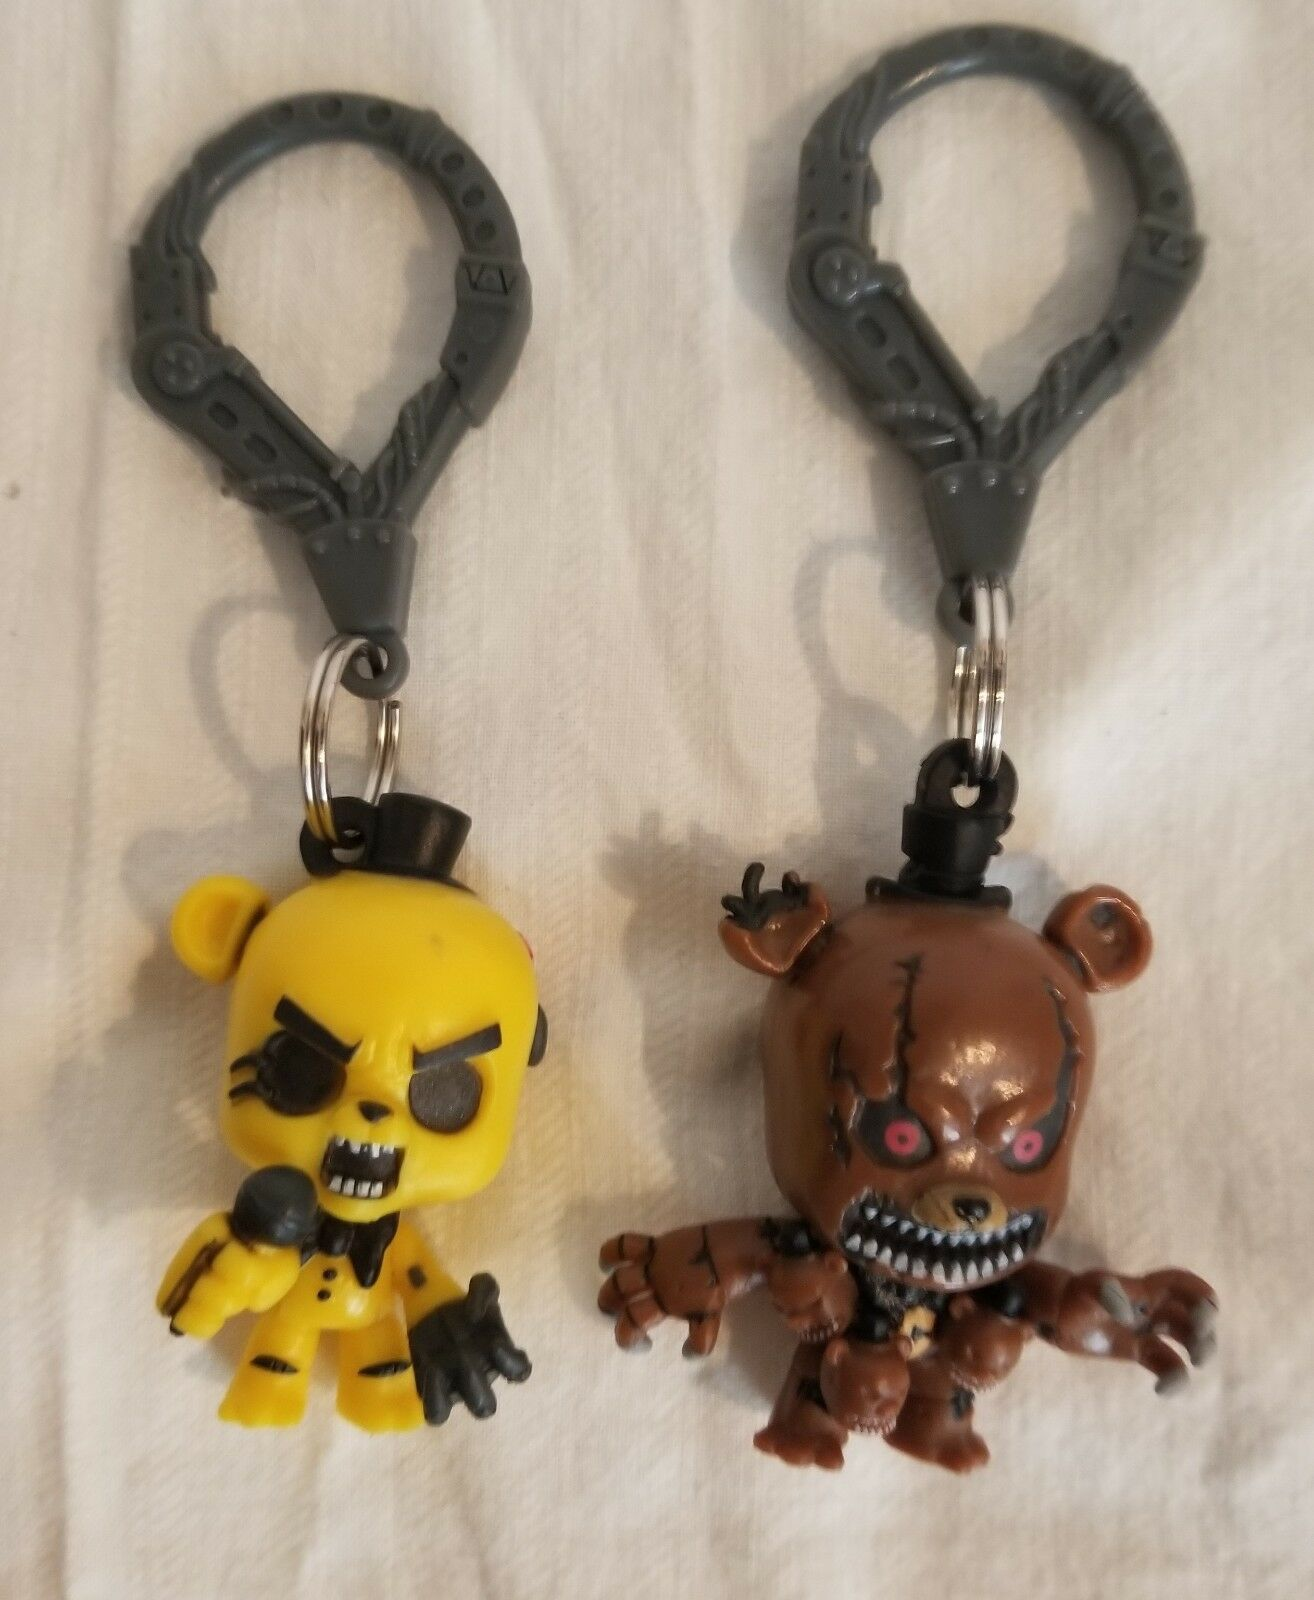 Authentic Five nights at Freddys keychains....Free Shipping